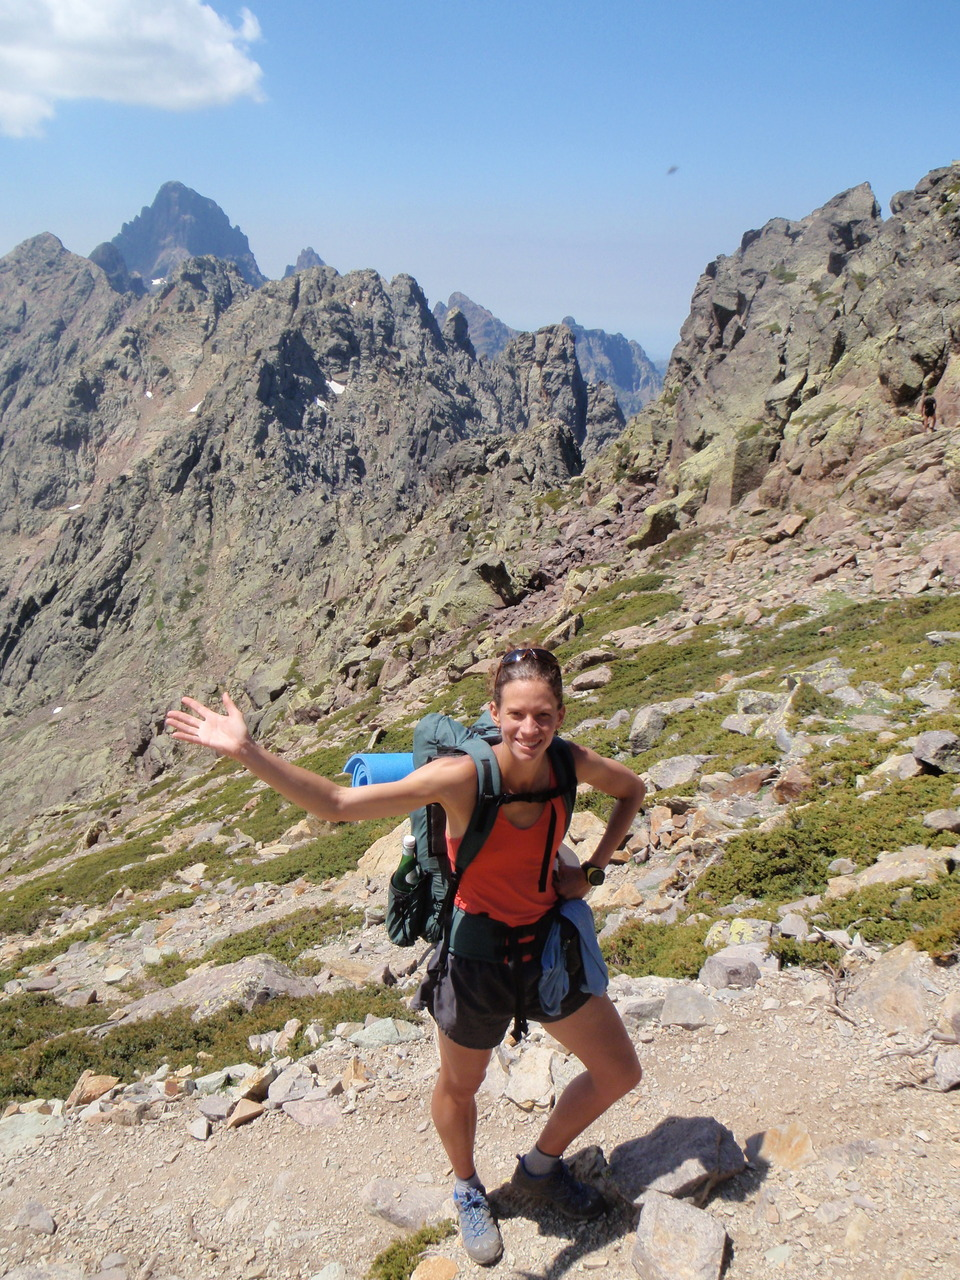 Woman Hot-Footing Toward Speed Record On Appalachian Trail  The Spokesman-Review-3984